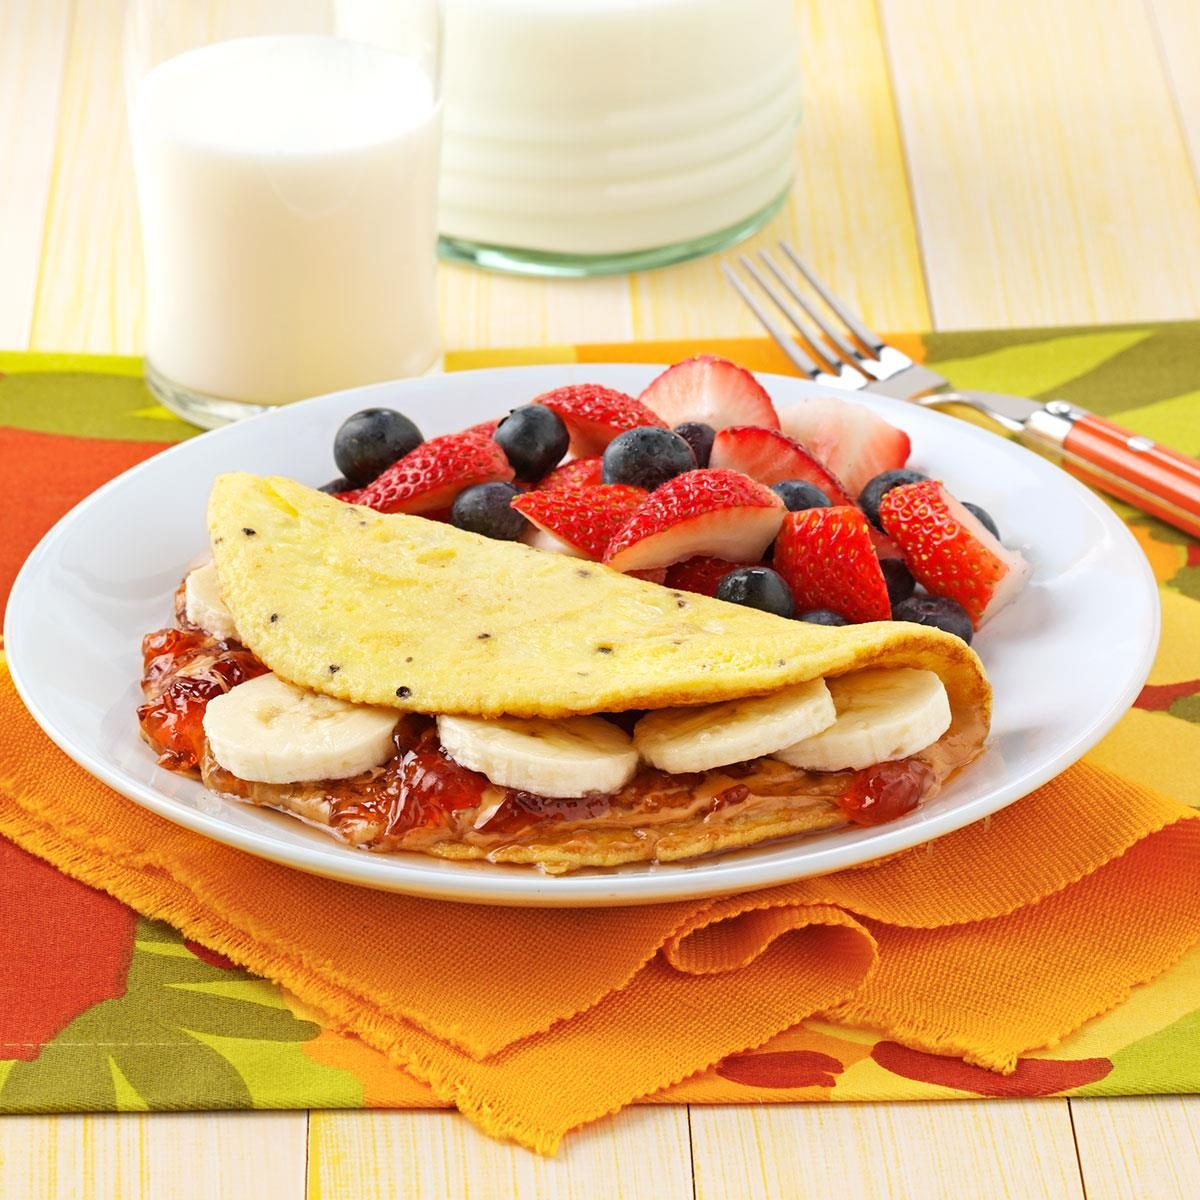 Peanut Butter And Jelly Omelet Recipe Taste Of Home